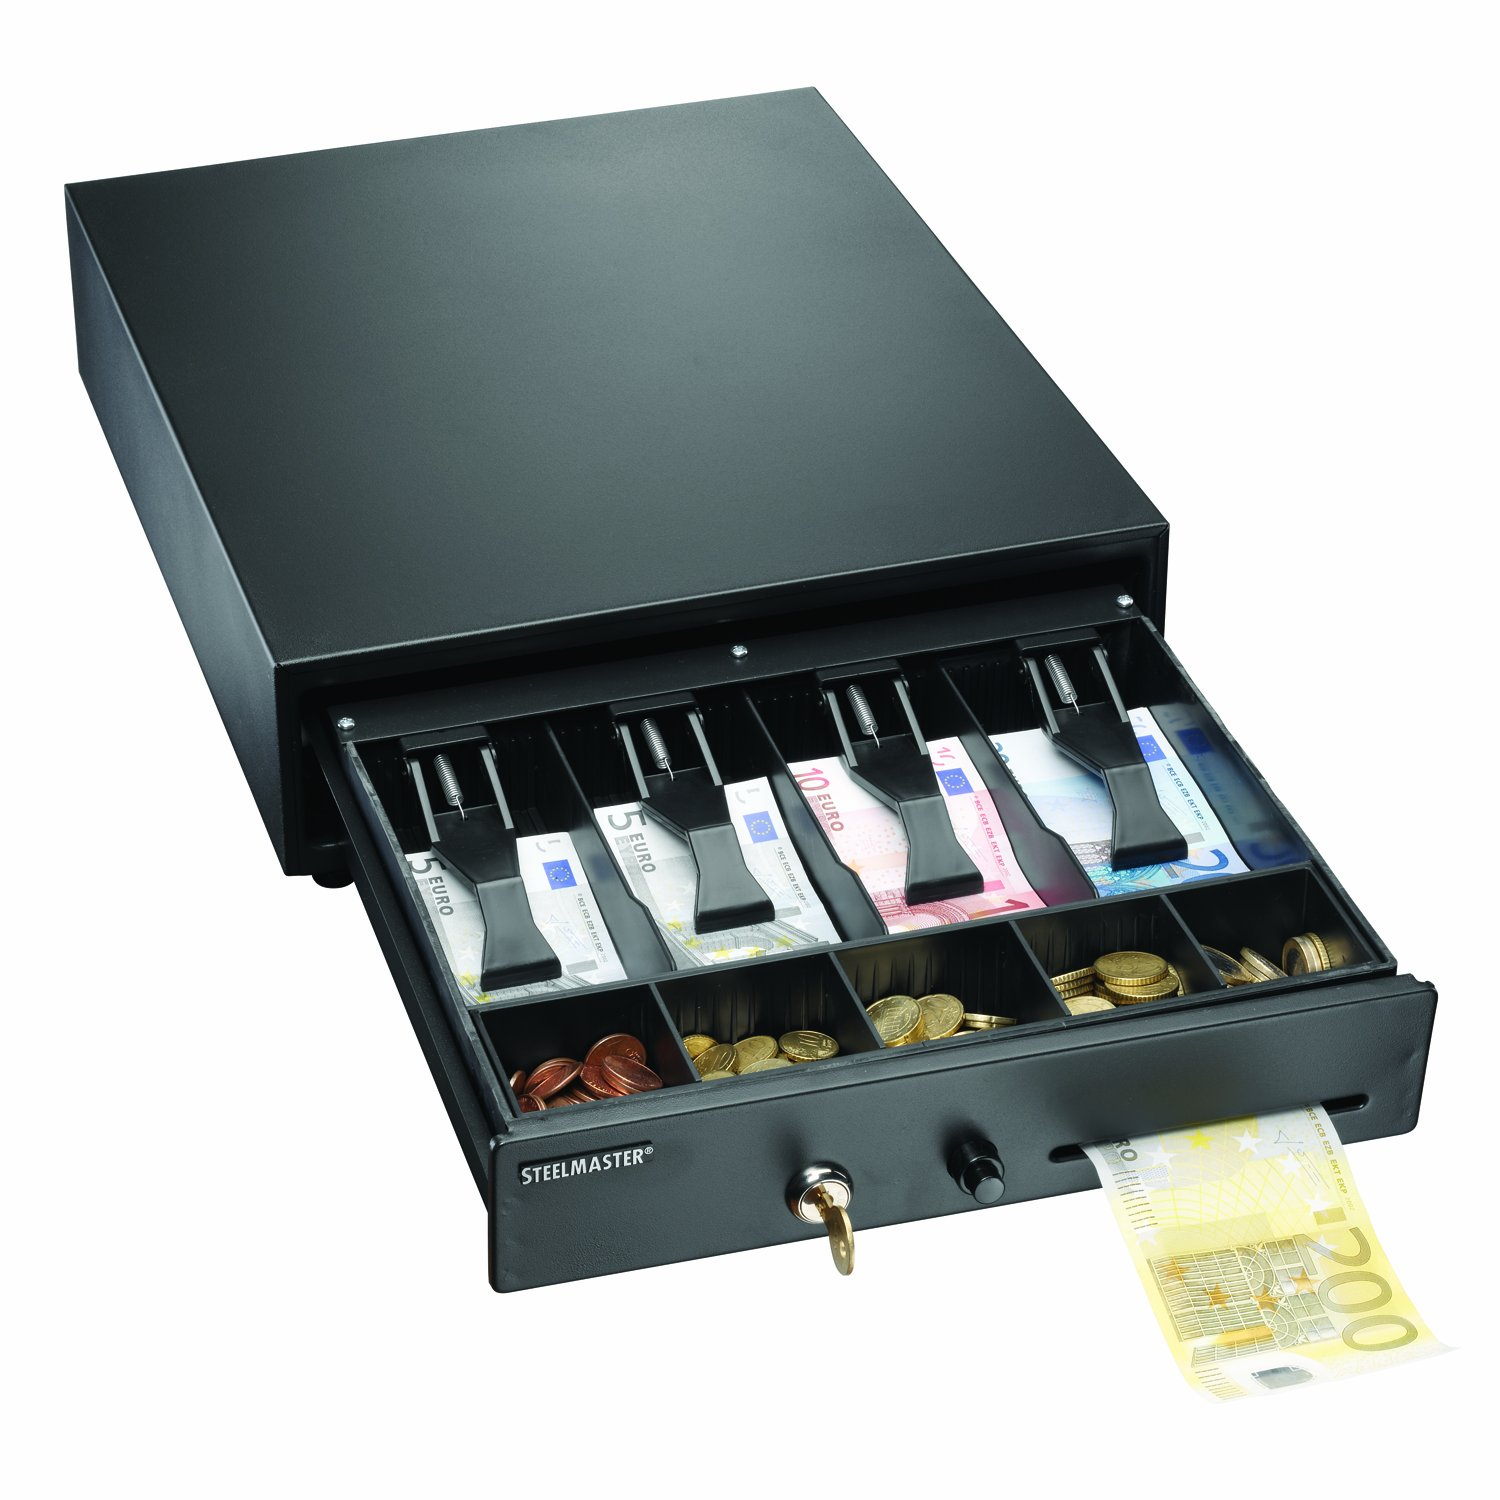 STEELMASTER 1046 Compact Steel Cash Drawer with Disc Tumbler Lock, Includes 2 Keys, Touch Button Release, Removable Tray, Black (225104604) MMF225104604